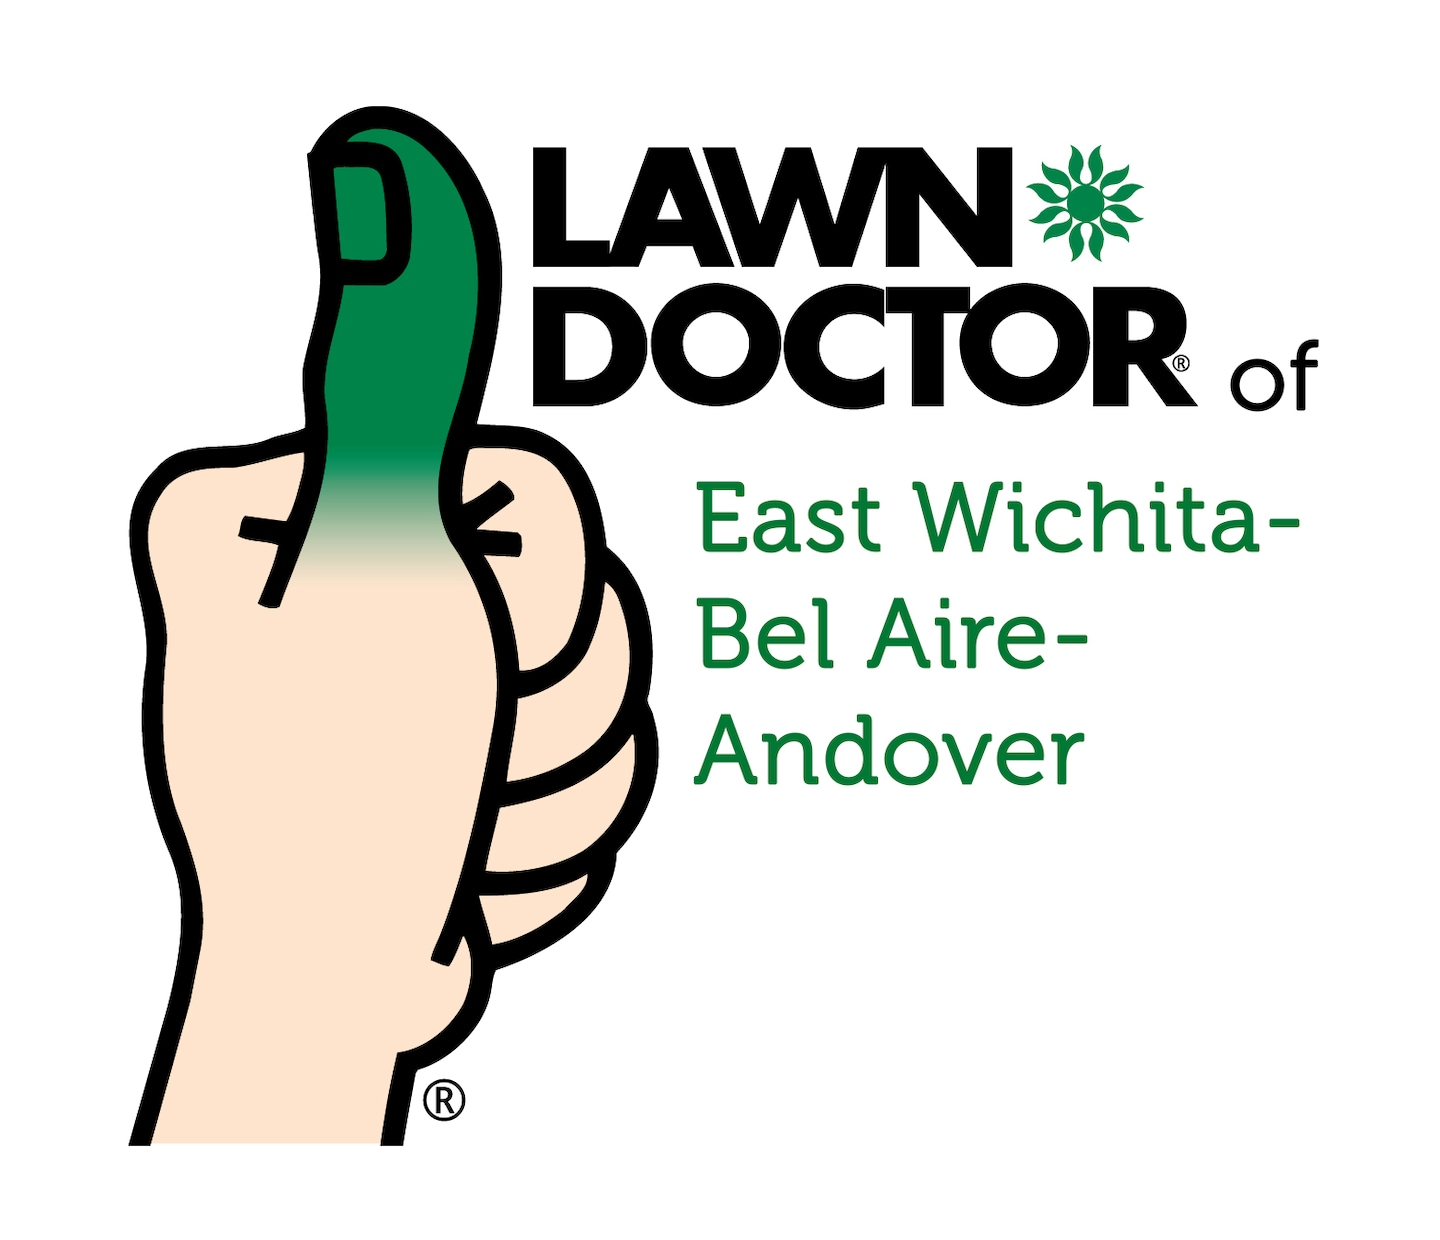 Lawn Doctor of East Wichita and Andover